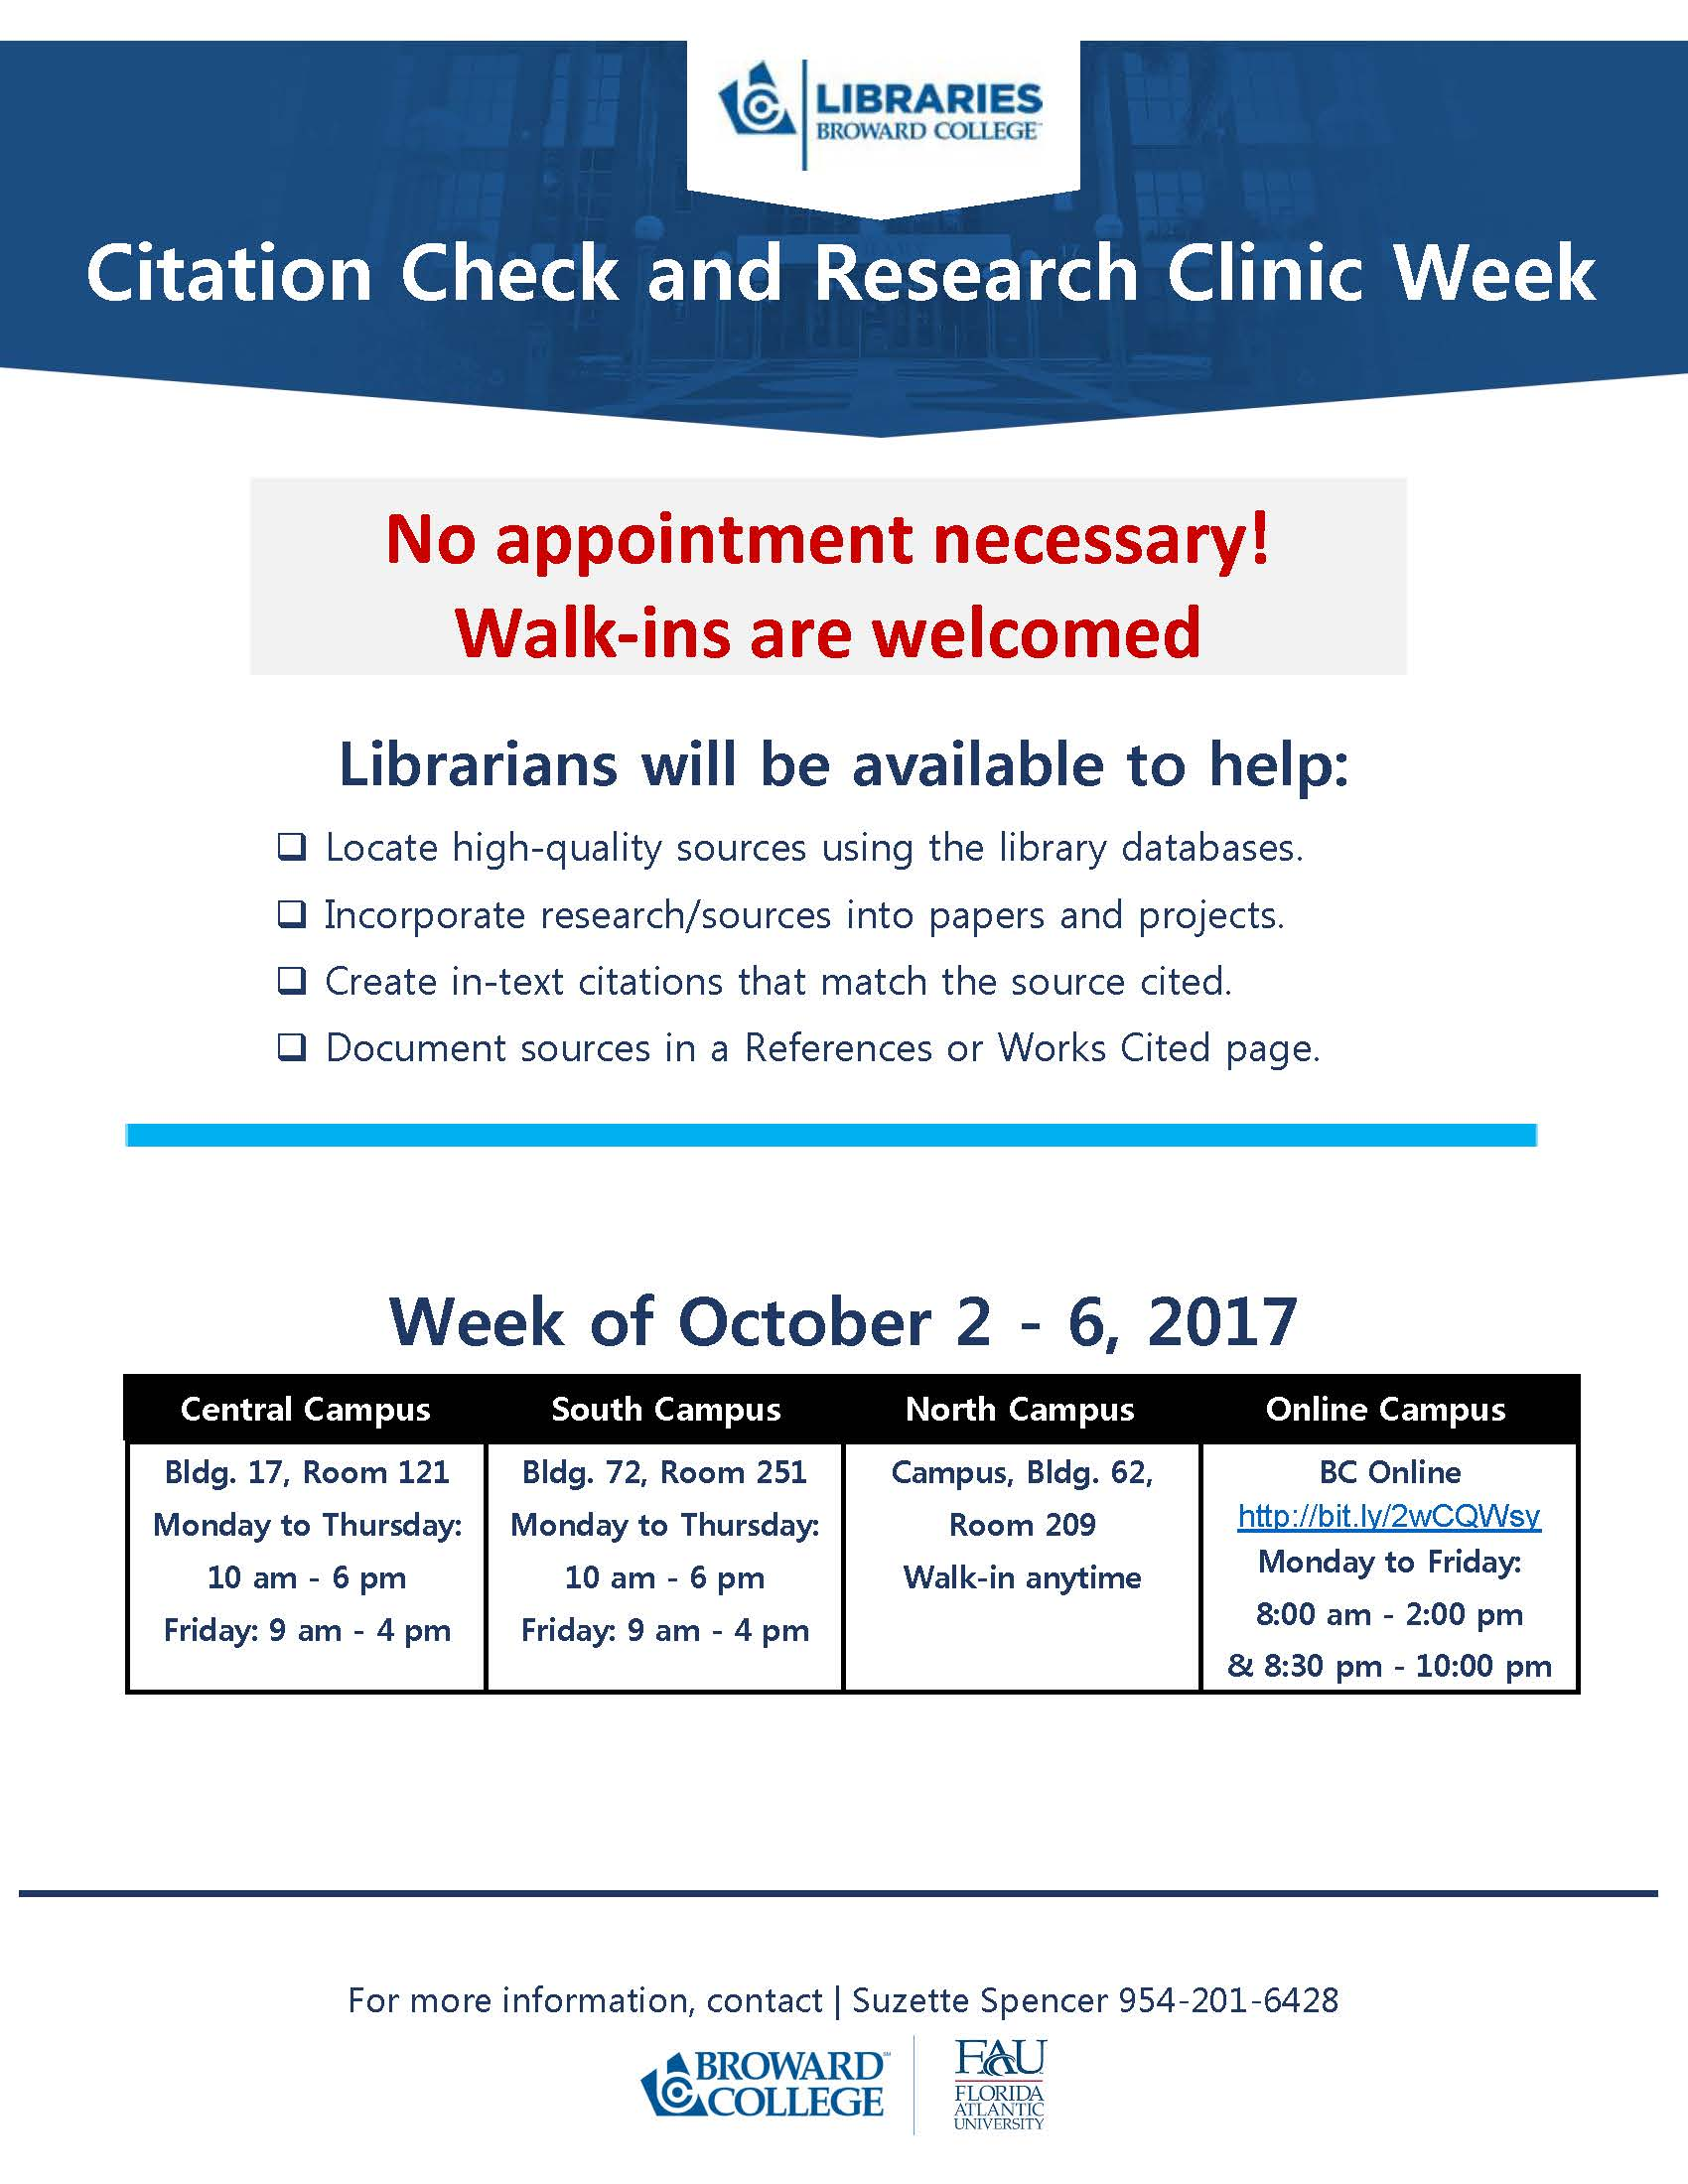 Drop-In Research Clinic - NO APPOINTMENT NECESSARY